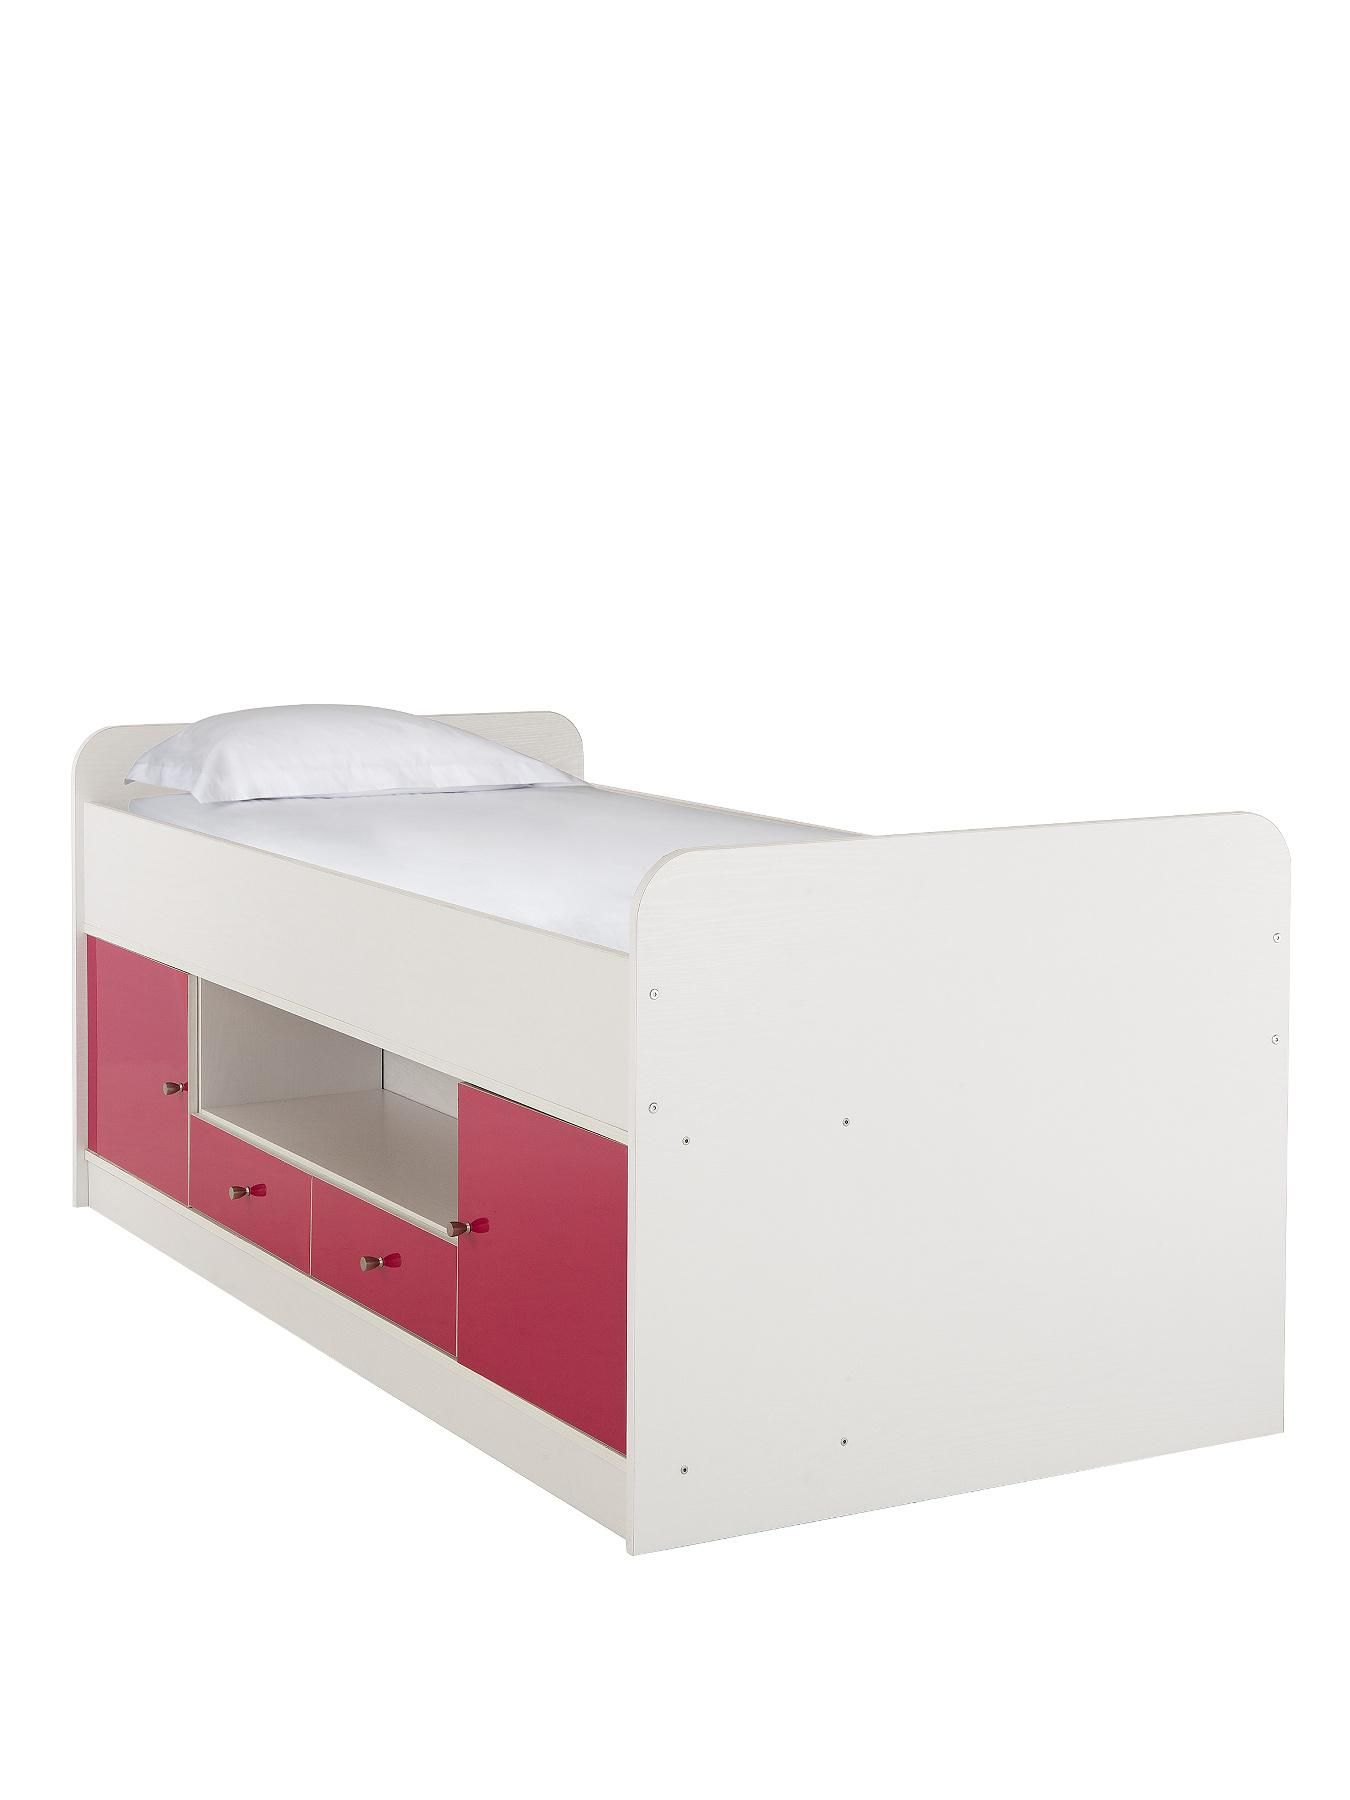 Kidspace Bedroom Furniture Cosmo Cabin Bed With Optional Mattress Pink Money And Beds